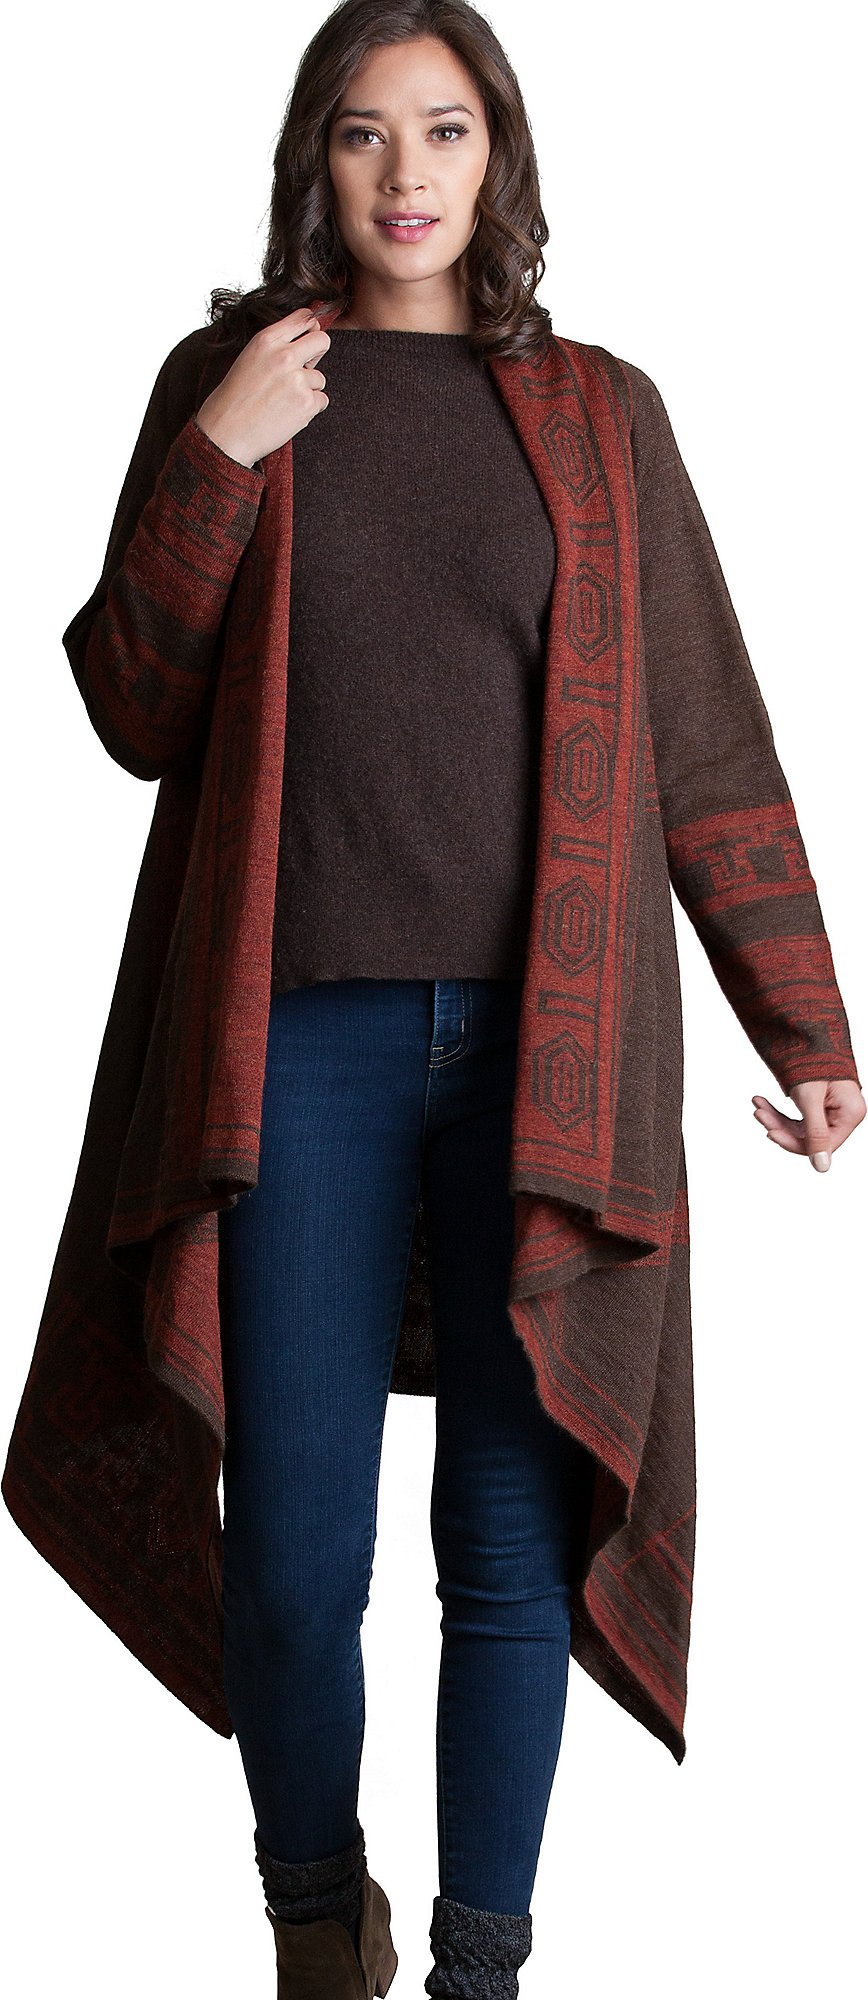 Overland Sheepskin Co. Serenity Reversible Peruvian Alpaca Wool Open Sweater Cape, Brick/Brown, Size Large/XLarge (12-18)